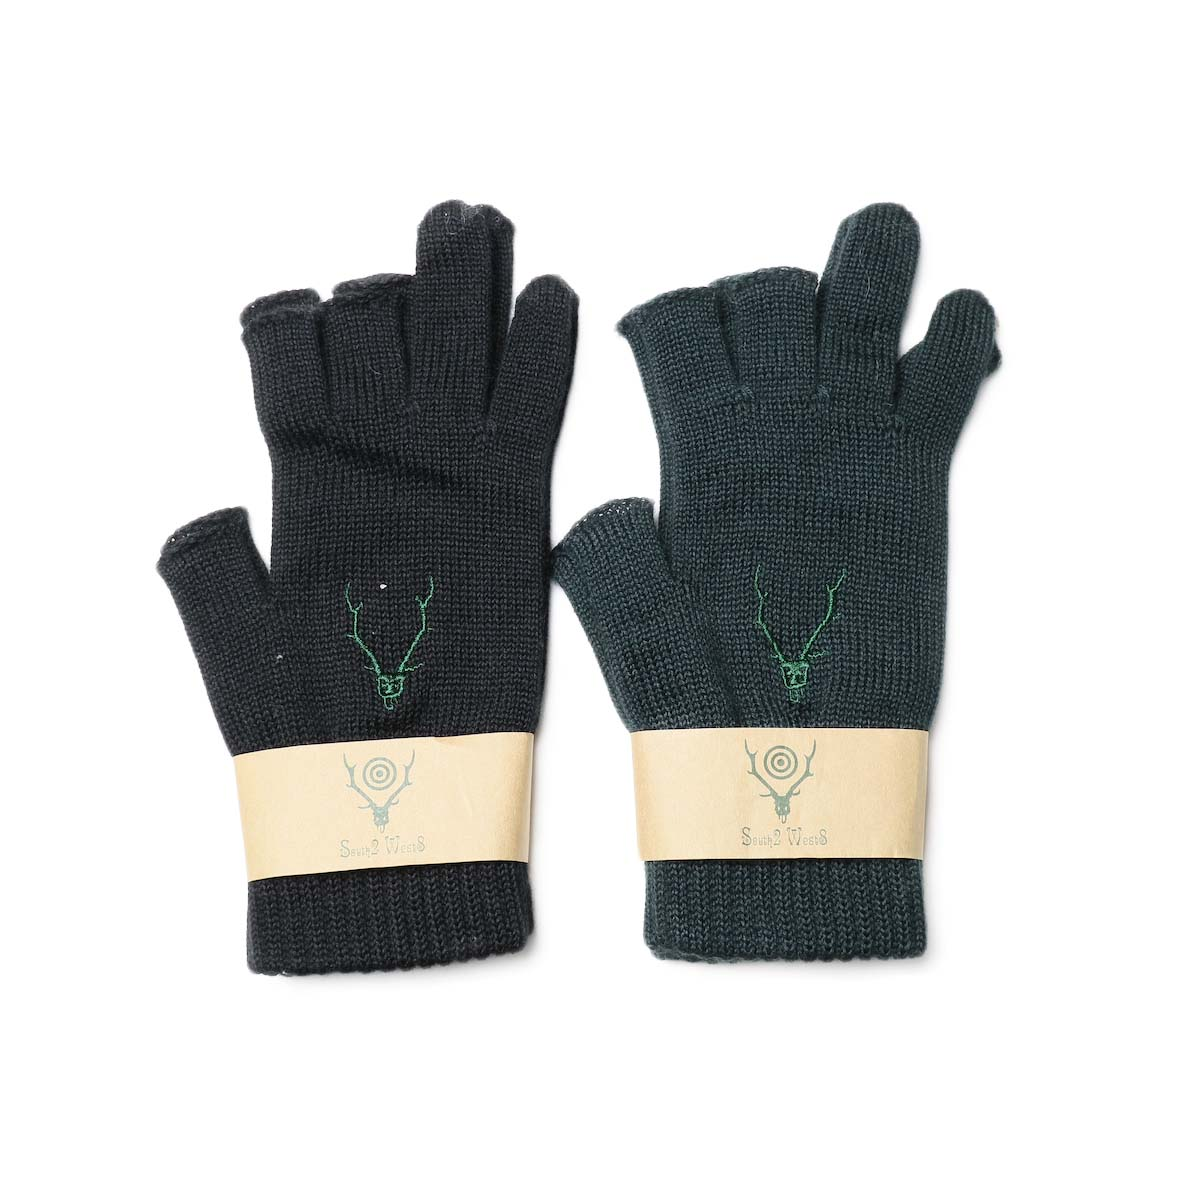 South2 West8 / Glove - w/a knit